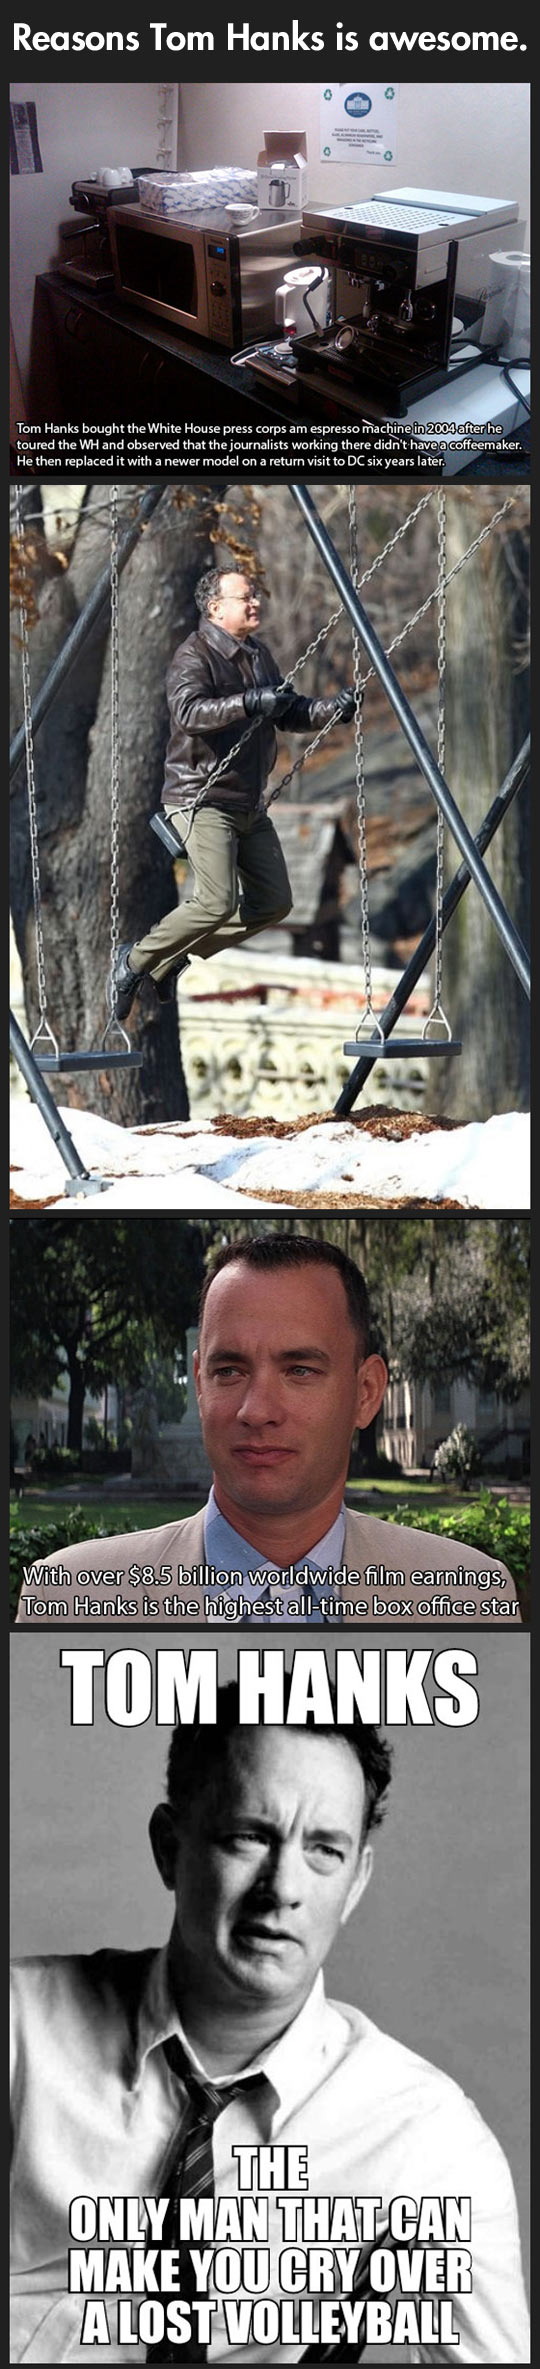 Why Tom Hanks is awesome...